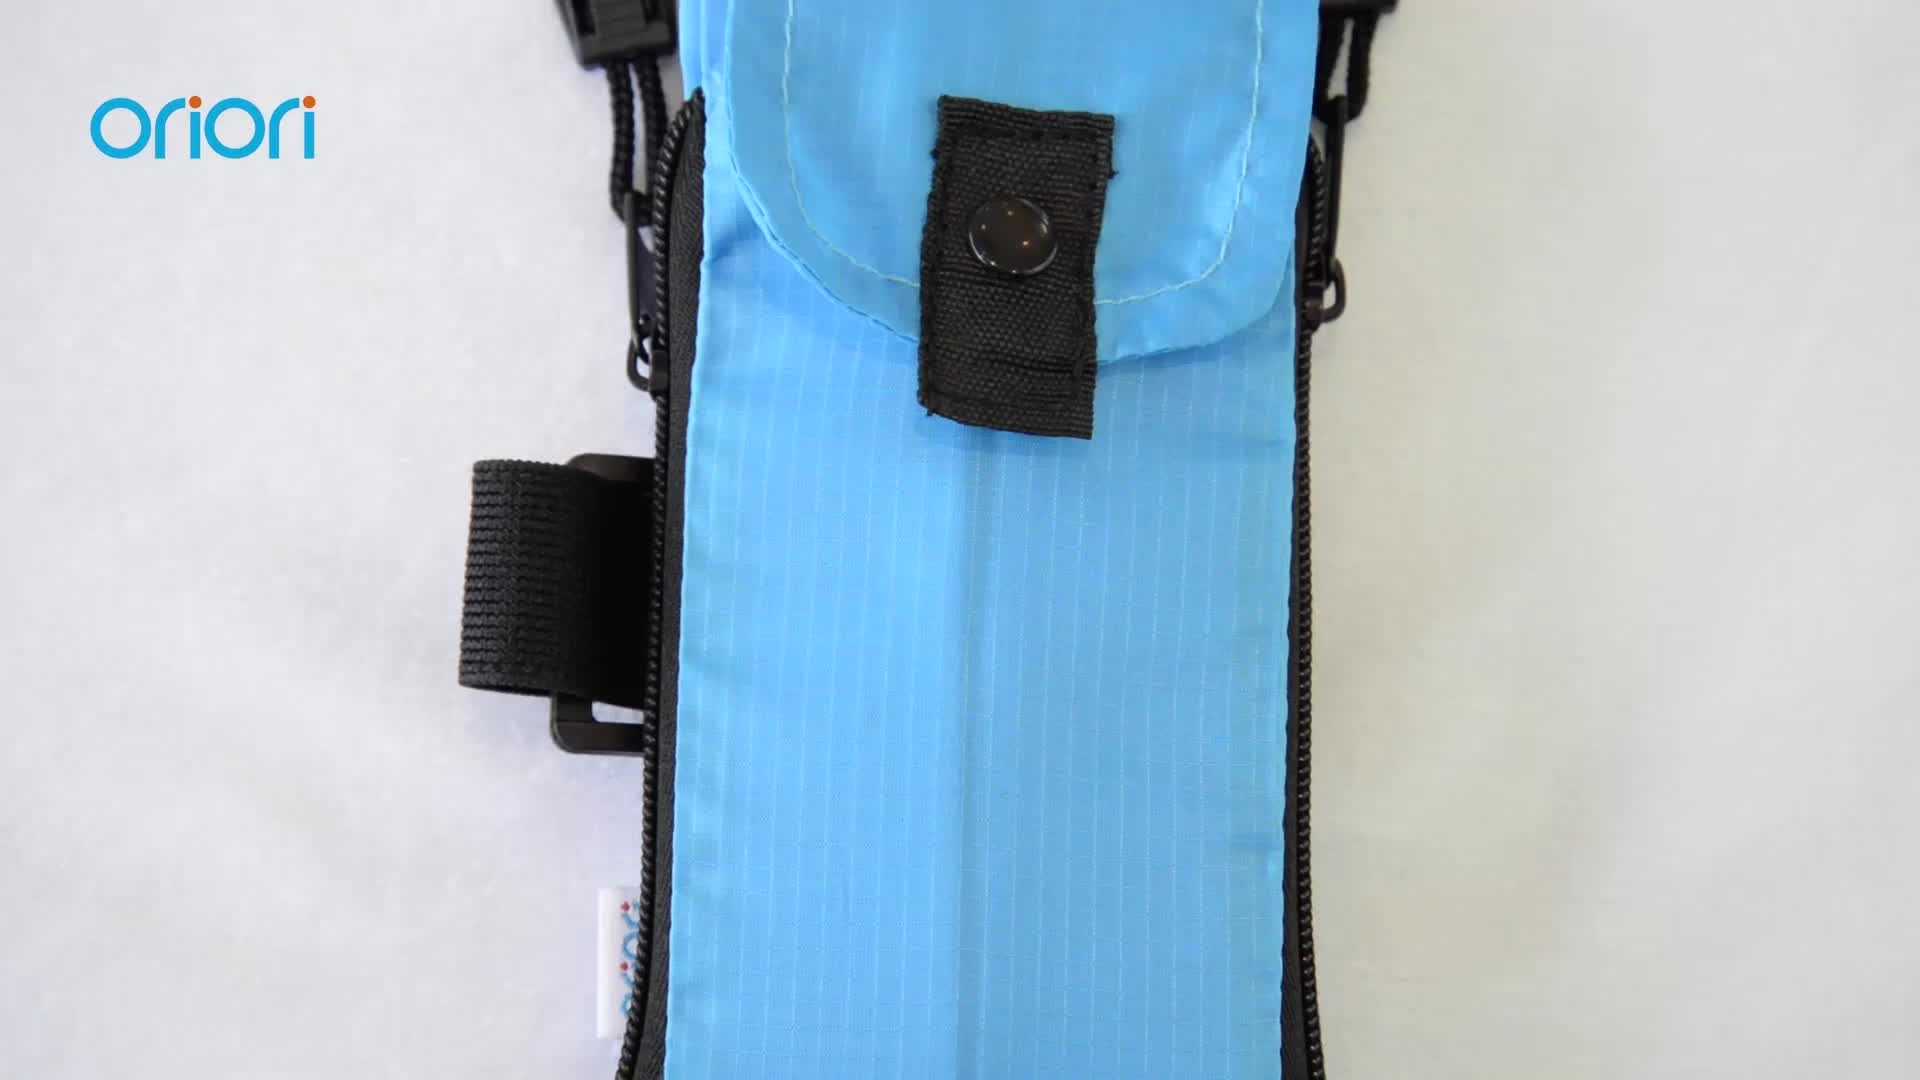 Universal sports running foldable armband bags for mobile phones